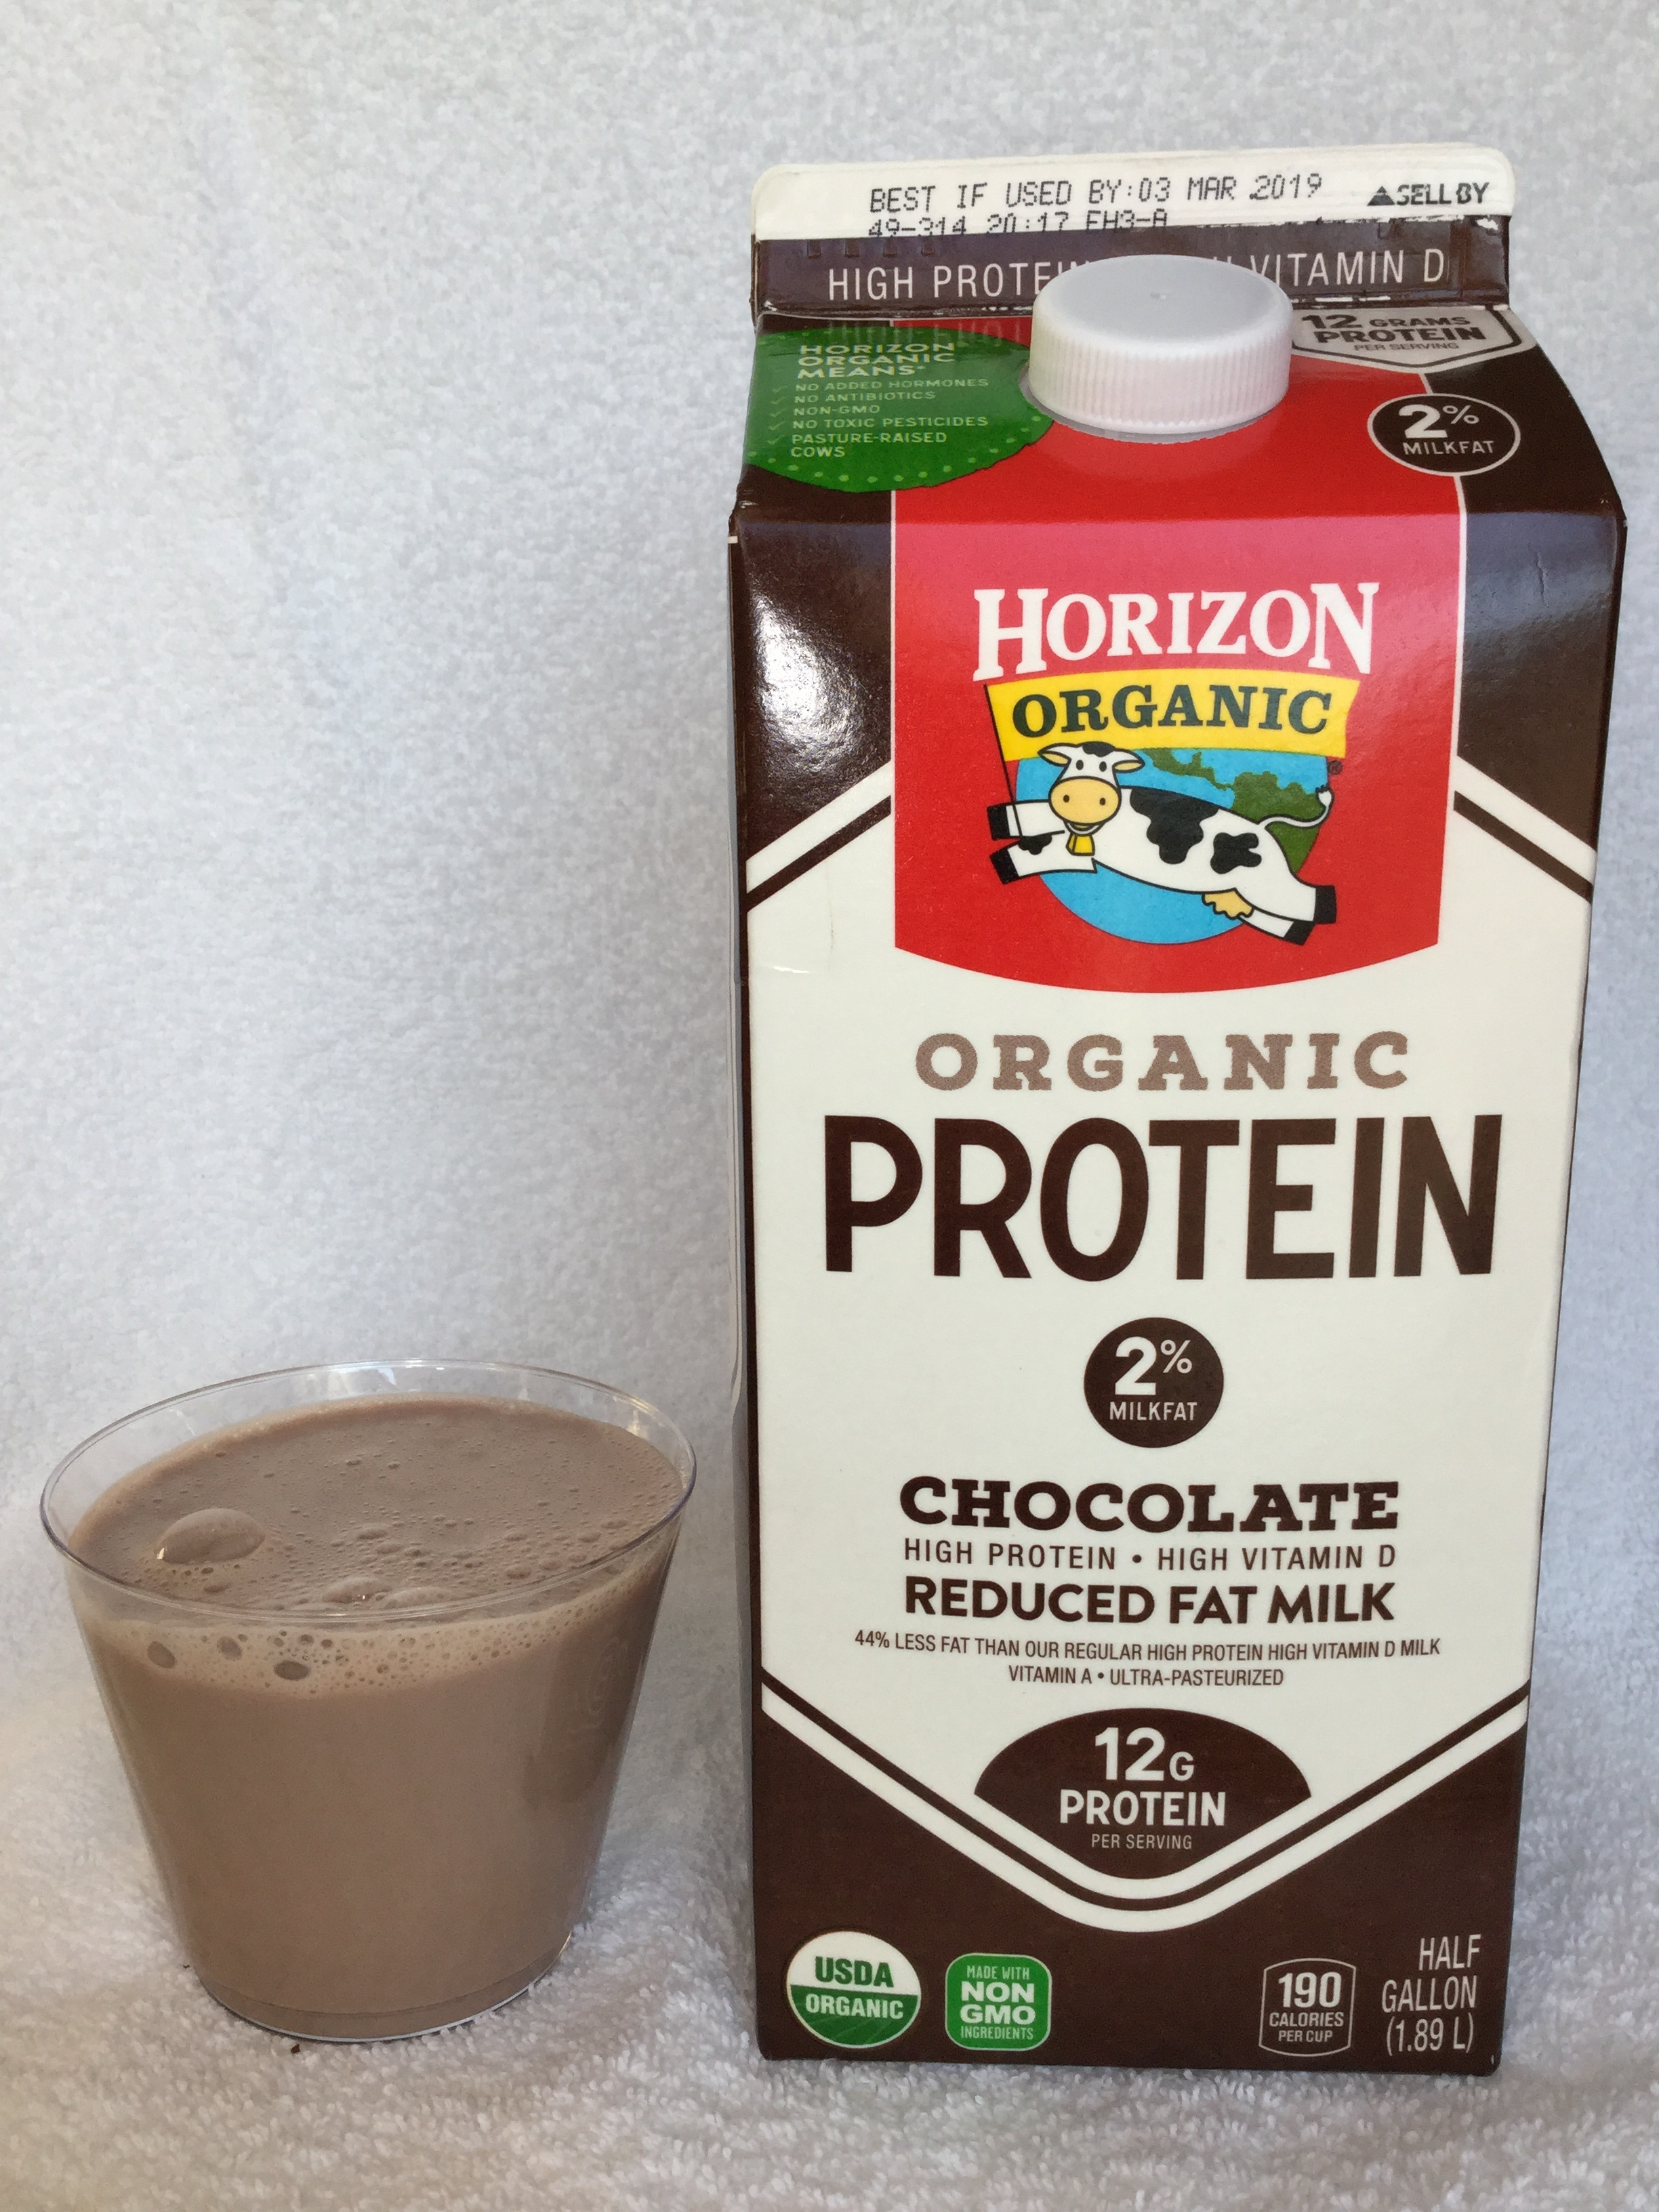 Horizon Organic Protein Reduced Fat Chocolate Milk Cup